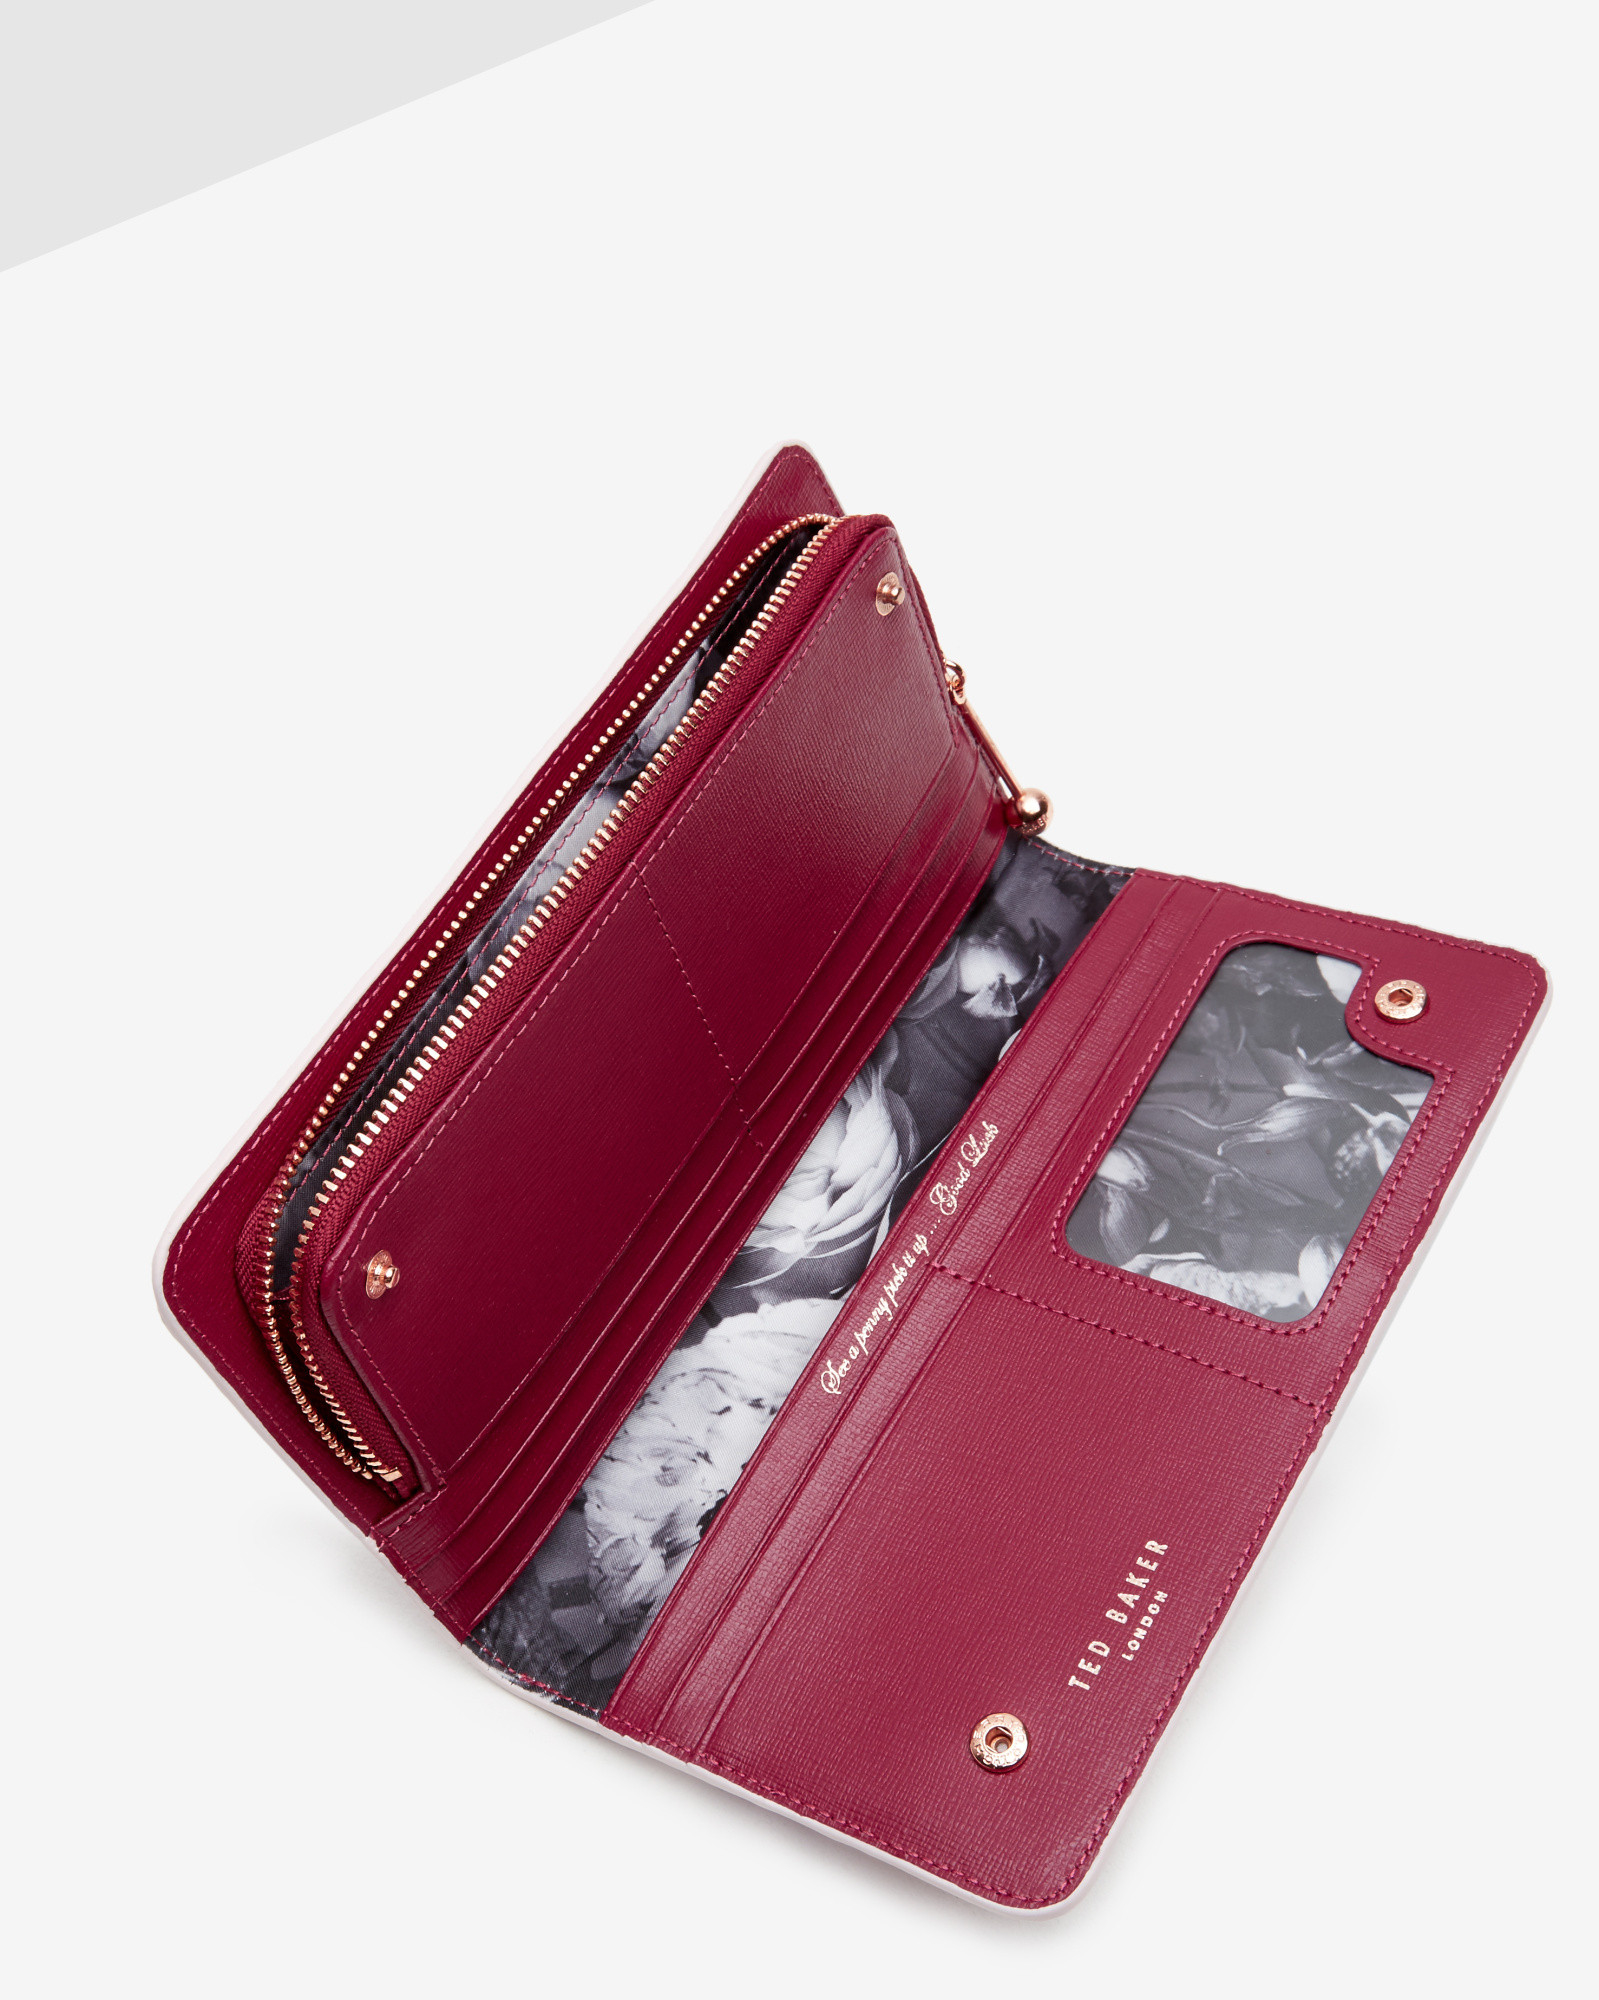 b3aa6f445465 Ted Baker Matinee Wallet - Best Photo Wallet Justiceforkenny.Org